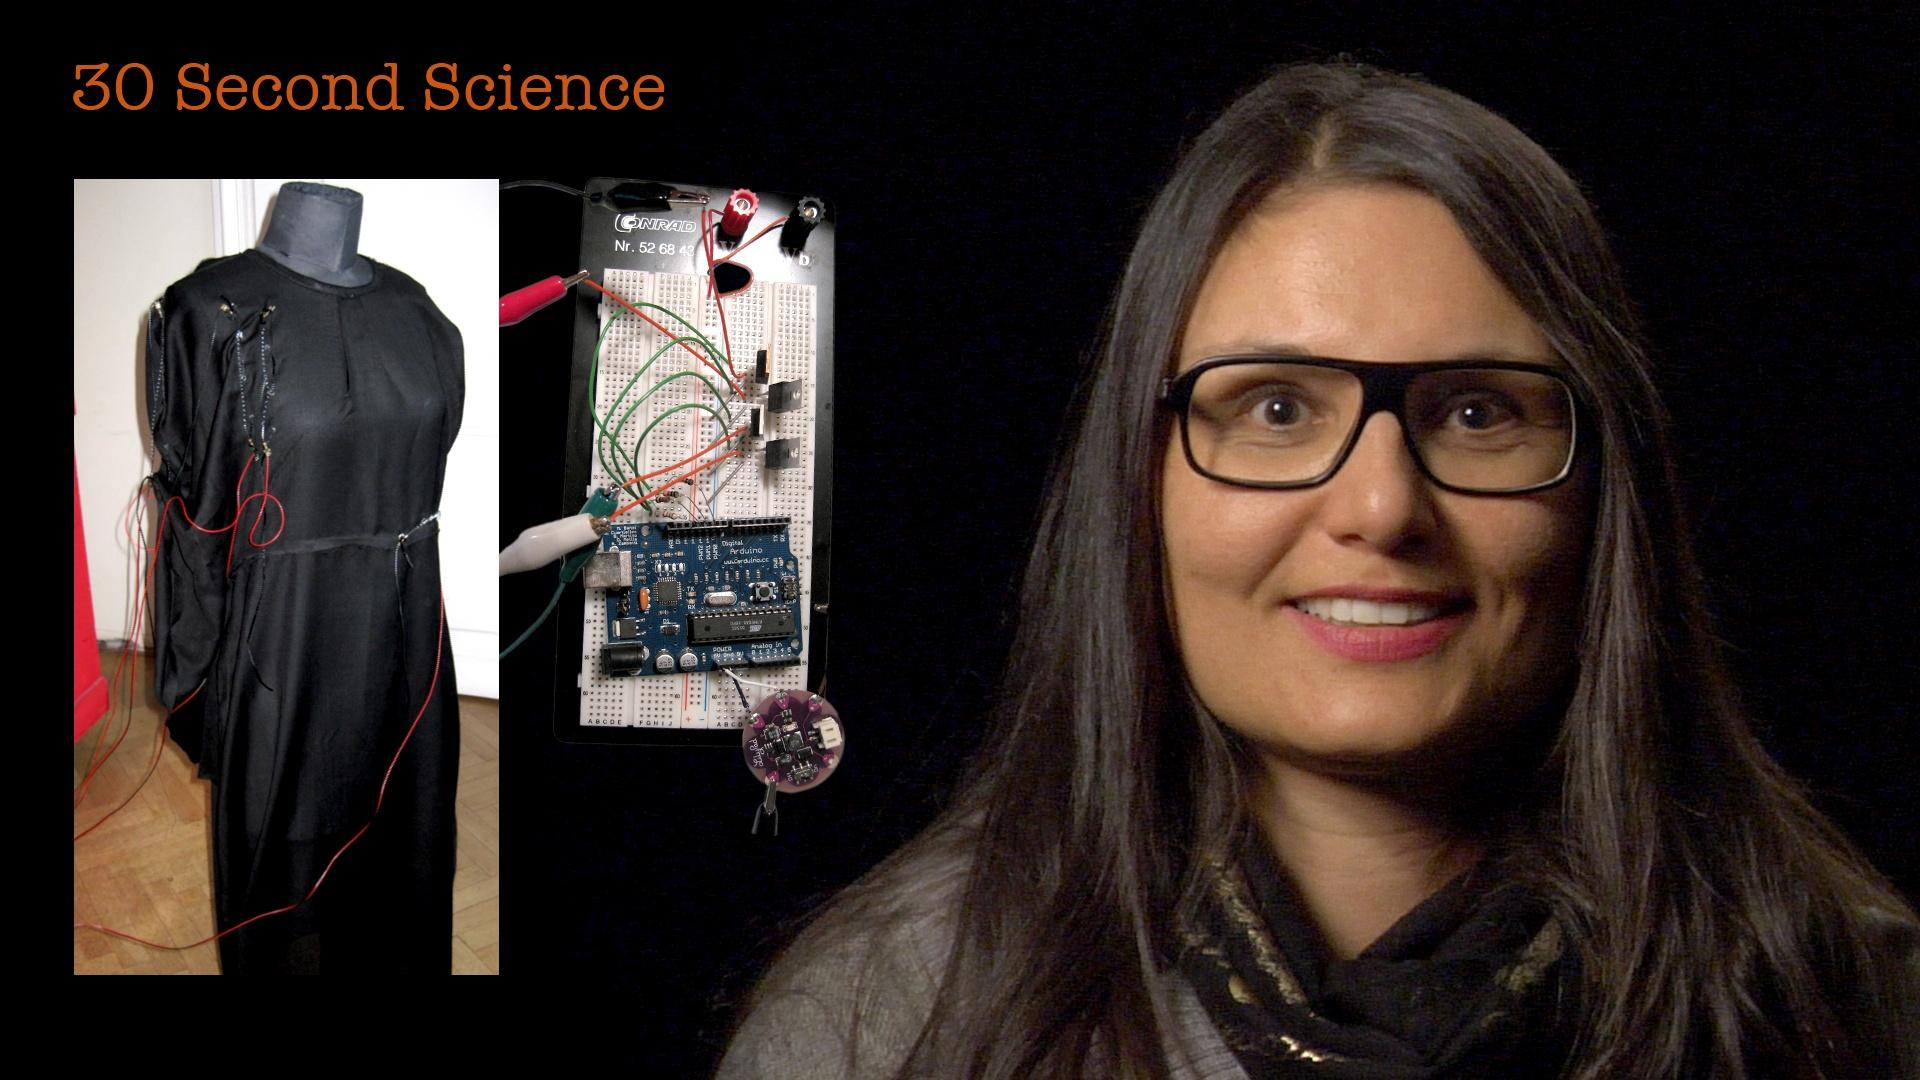 30 Second Science: Sabine Seymour image